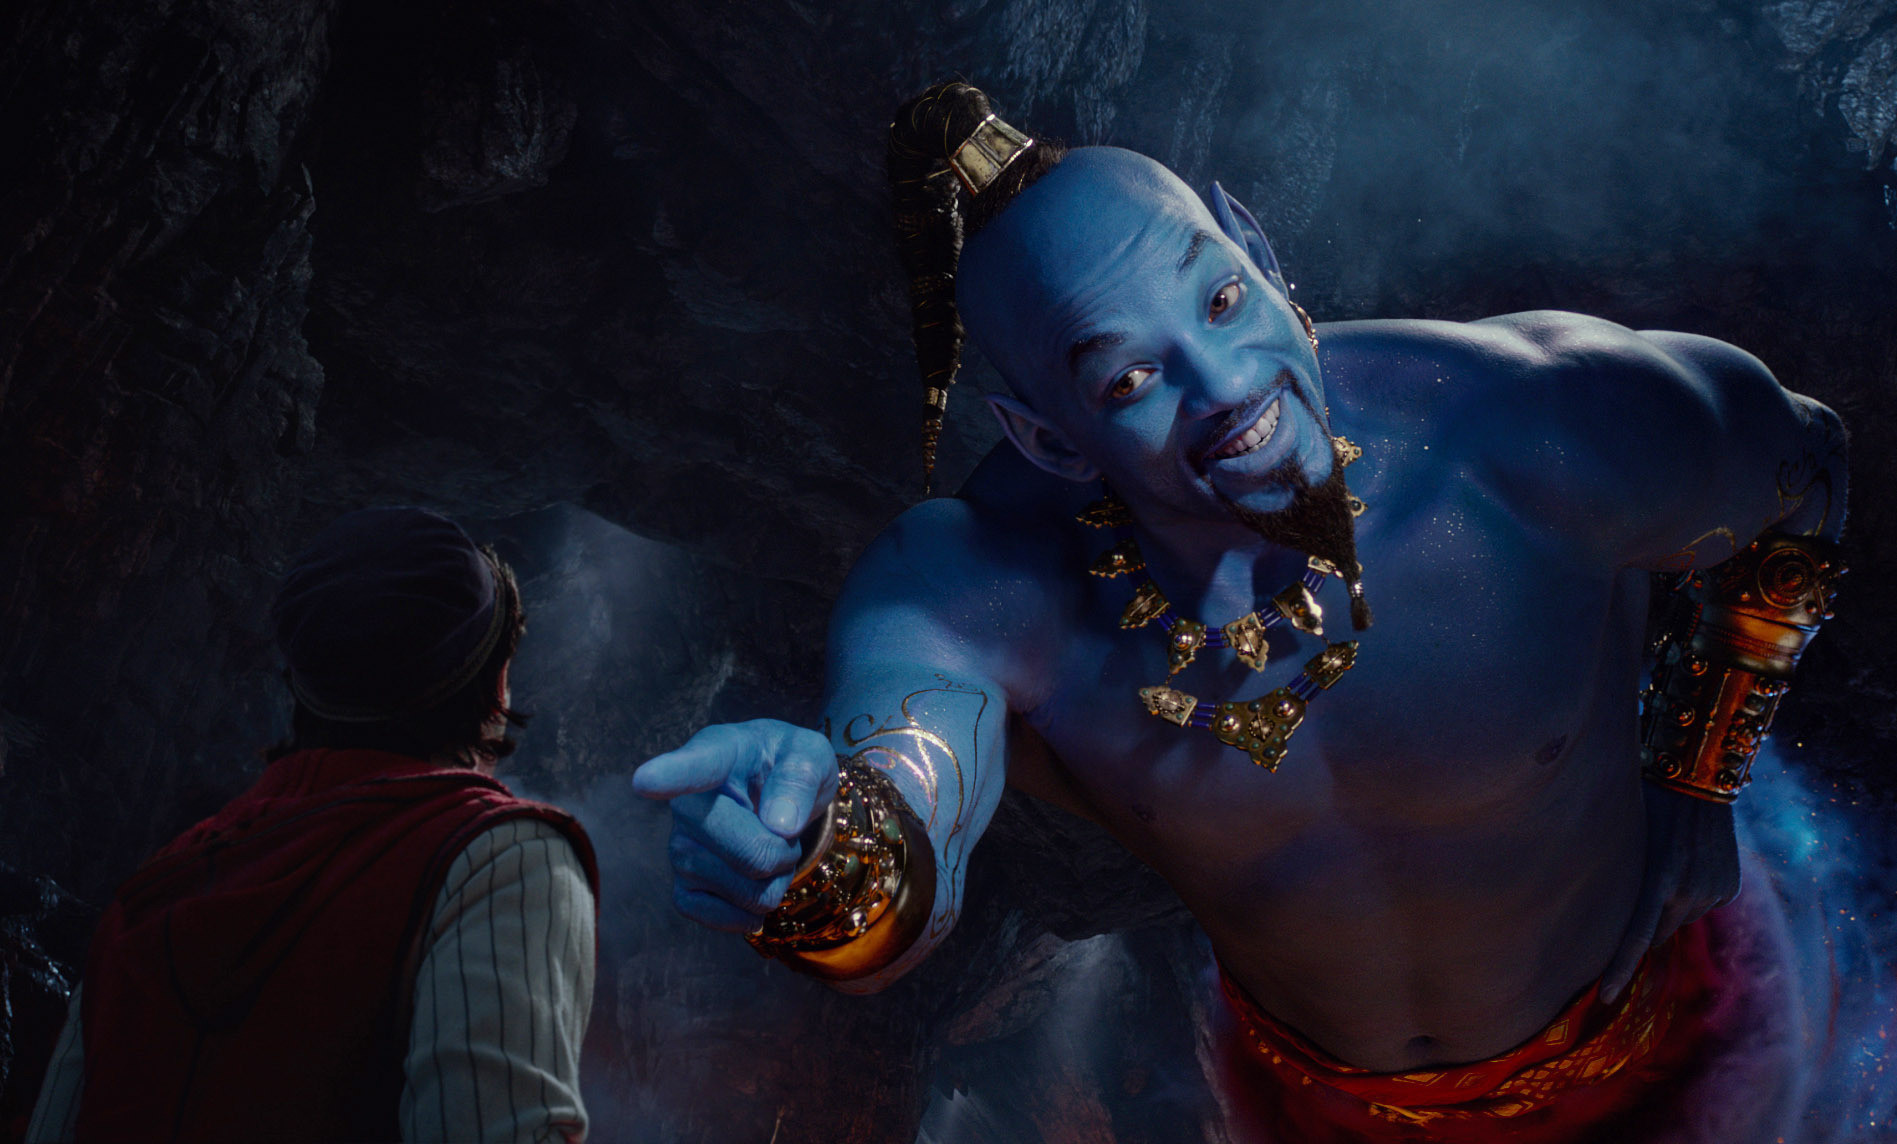 Will Smith on paying homage to Robin Williams and bringing His 'own flavor' to 'Aladdin'